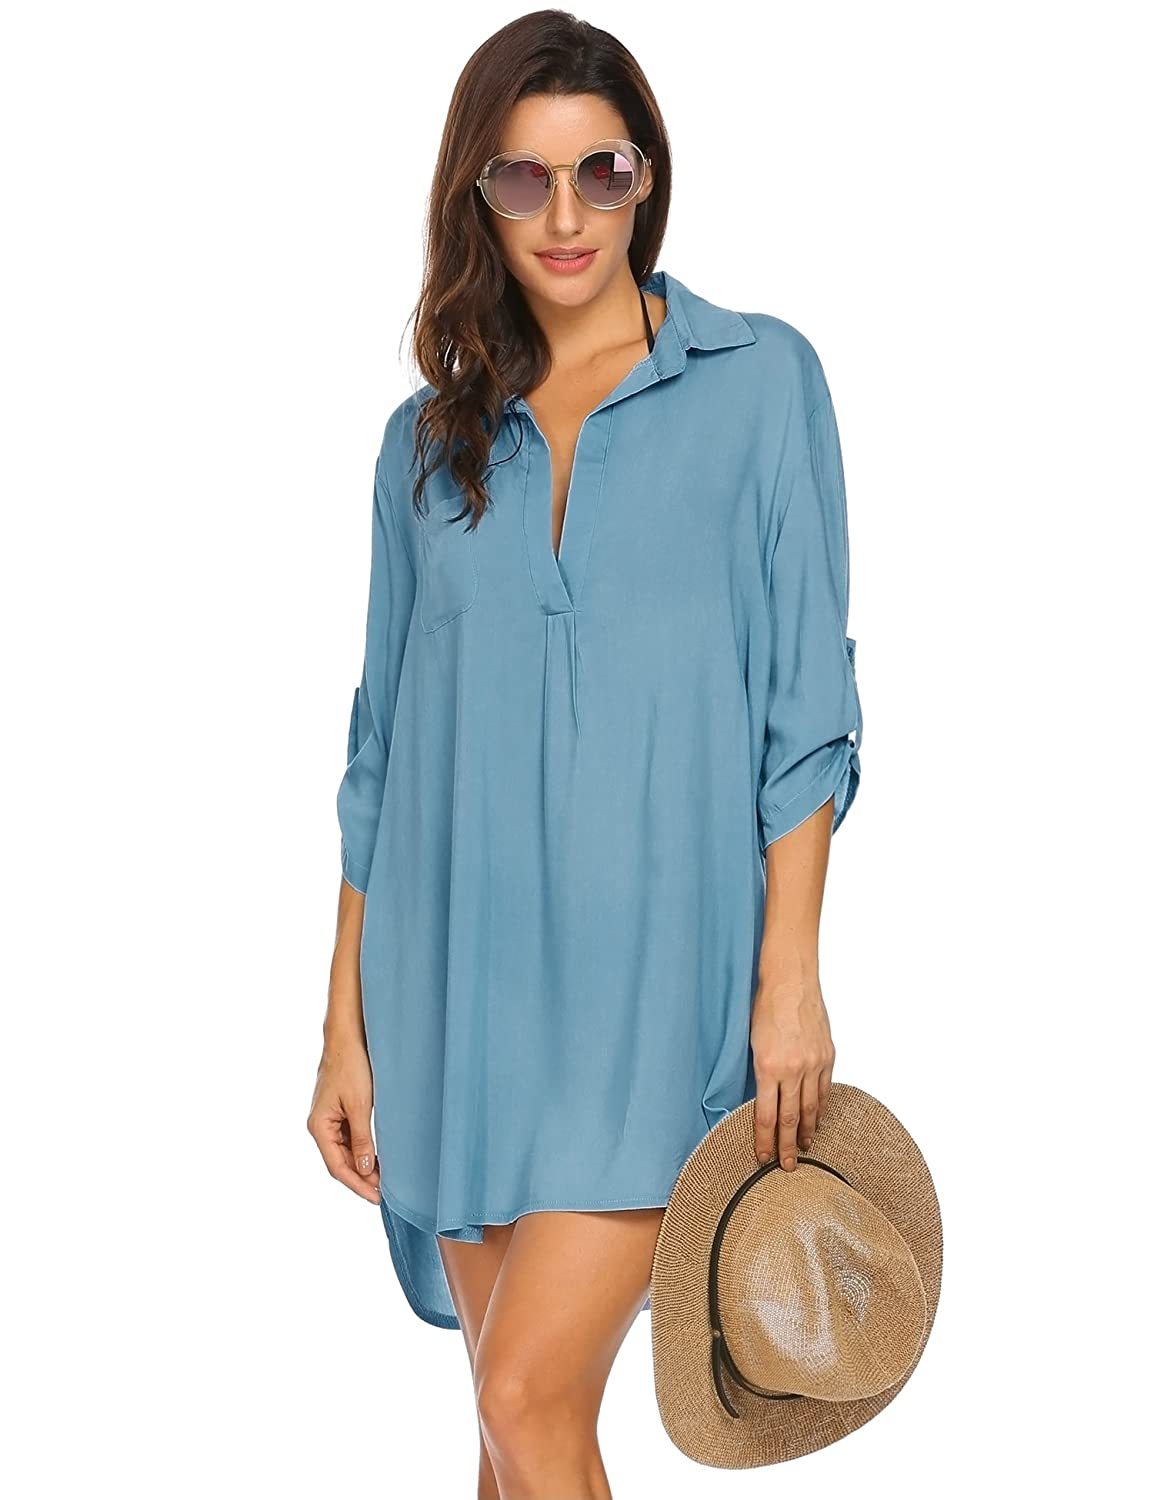 Damen Bikini Cover Up Strandkleid Chiffon Tunika Strandponcho Sommer Strand Vertuschen Shirt Dress